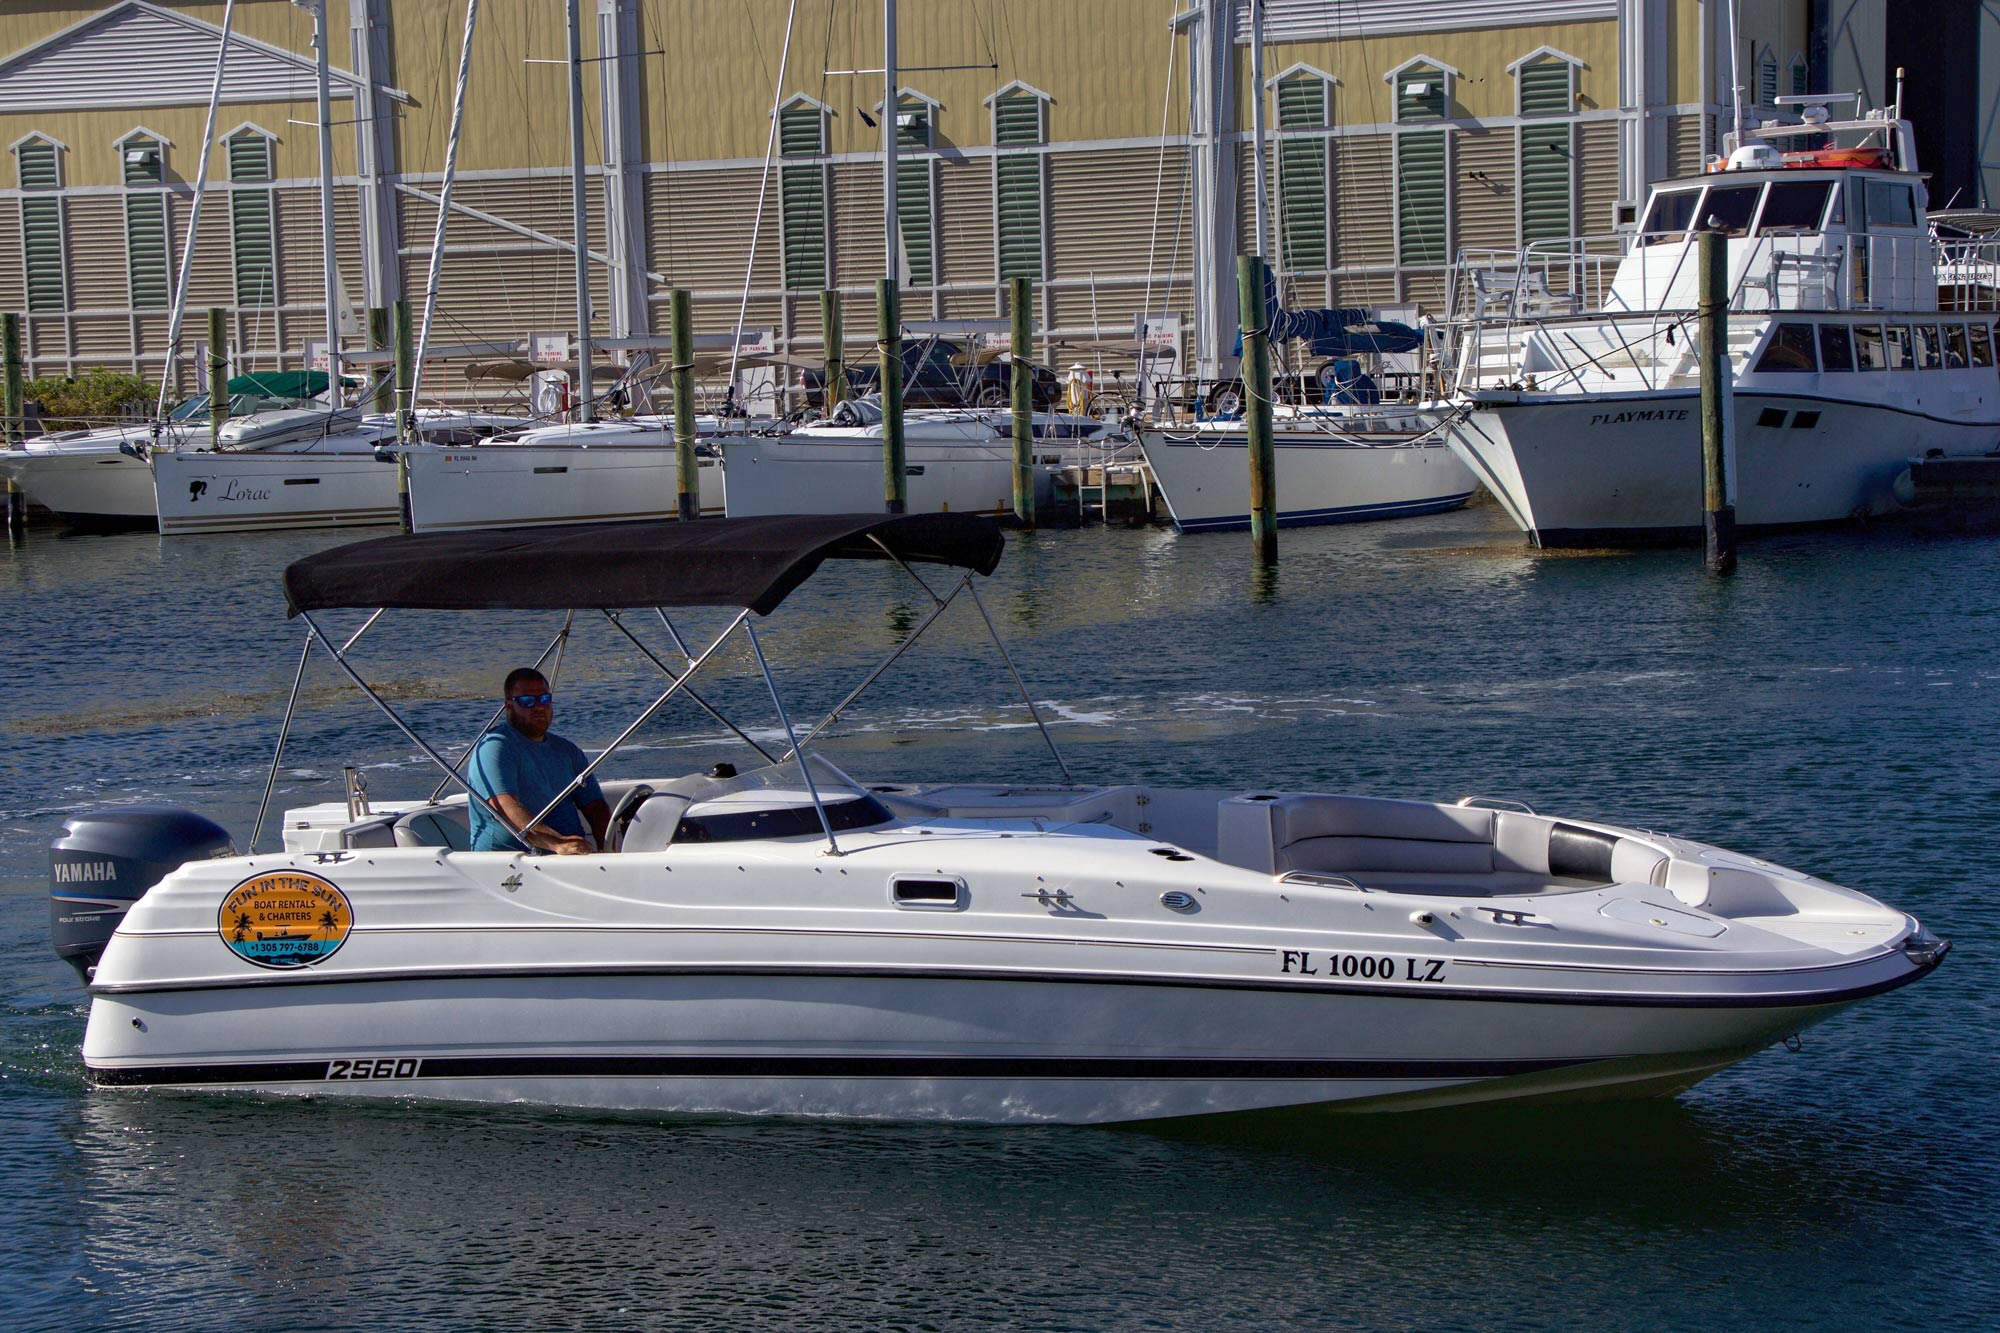 26ft Century deck boat, powered by a 225hp Yamaha four stroke